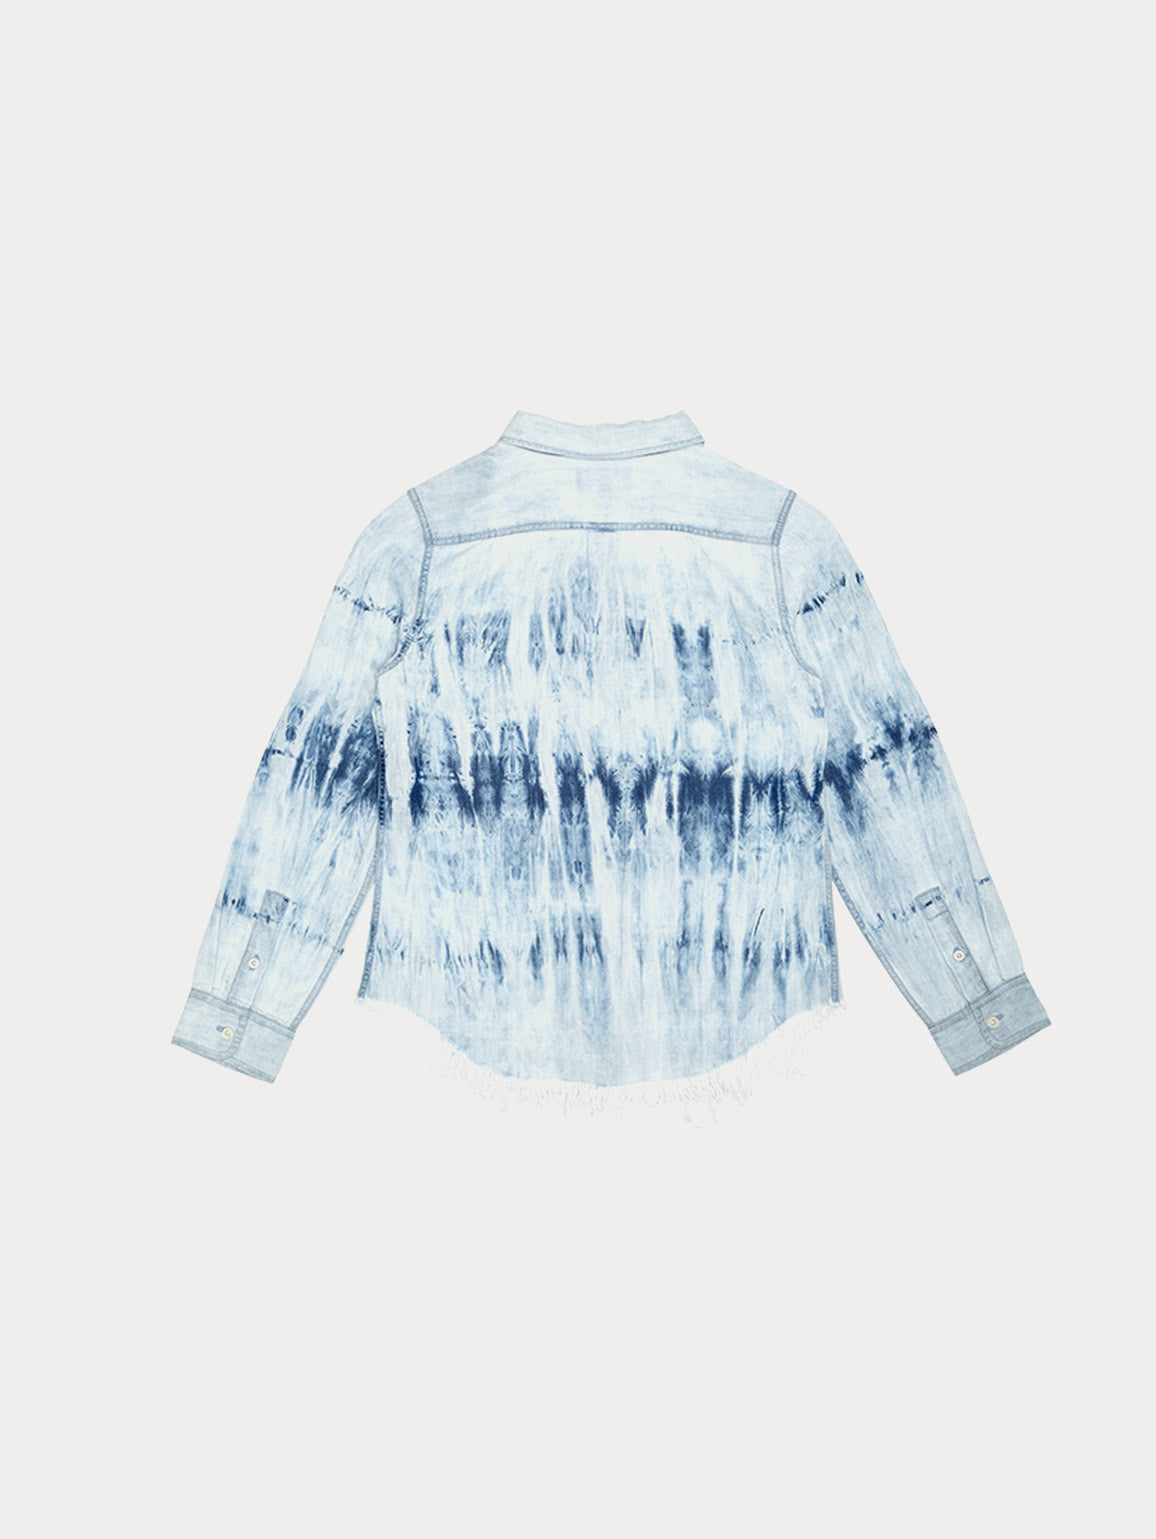 Girls - Tie Dye Button-Down Shirt - Olivia/G Shirts Tie Dye W Fringe Hem - DL1961